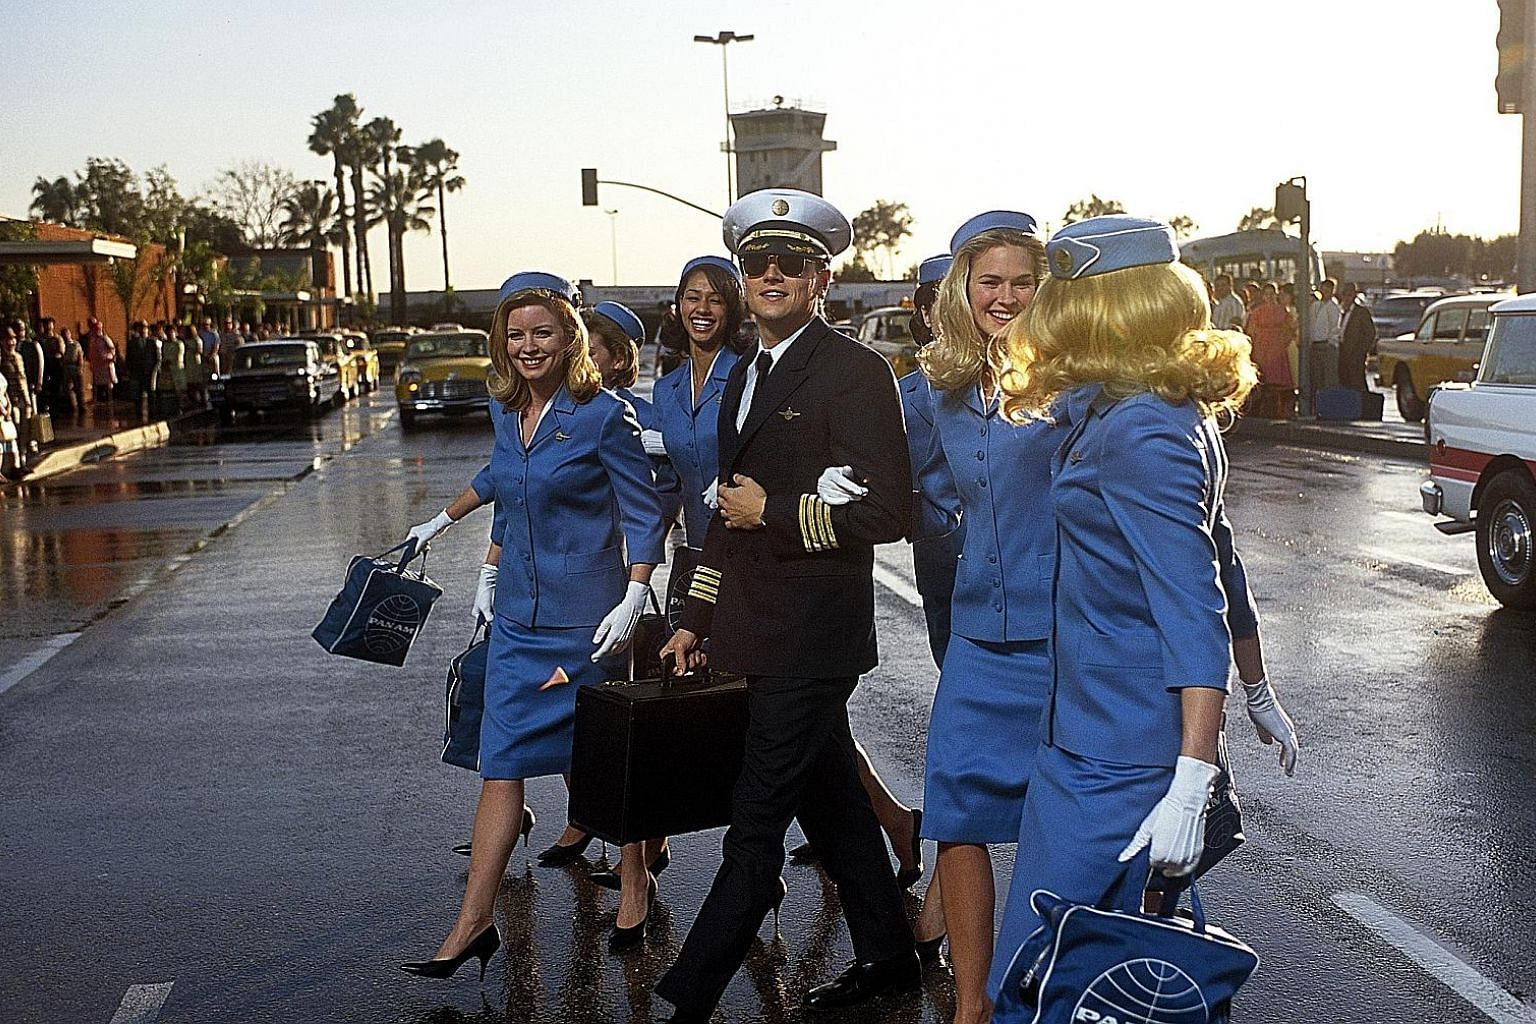 Just like Frank Abagnale Jr, the confidence trickster played by Leonardo DiCaprio (left) in the 2002 biopic Catch Me If You Can, the writer always felt he was one step away from being found out as a fraud.